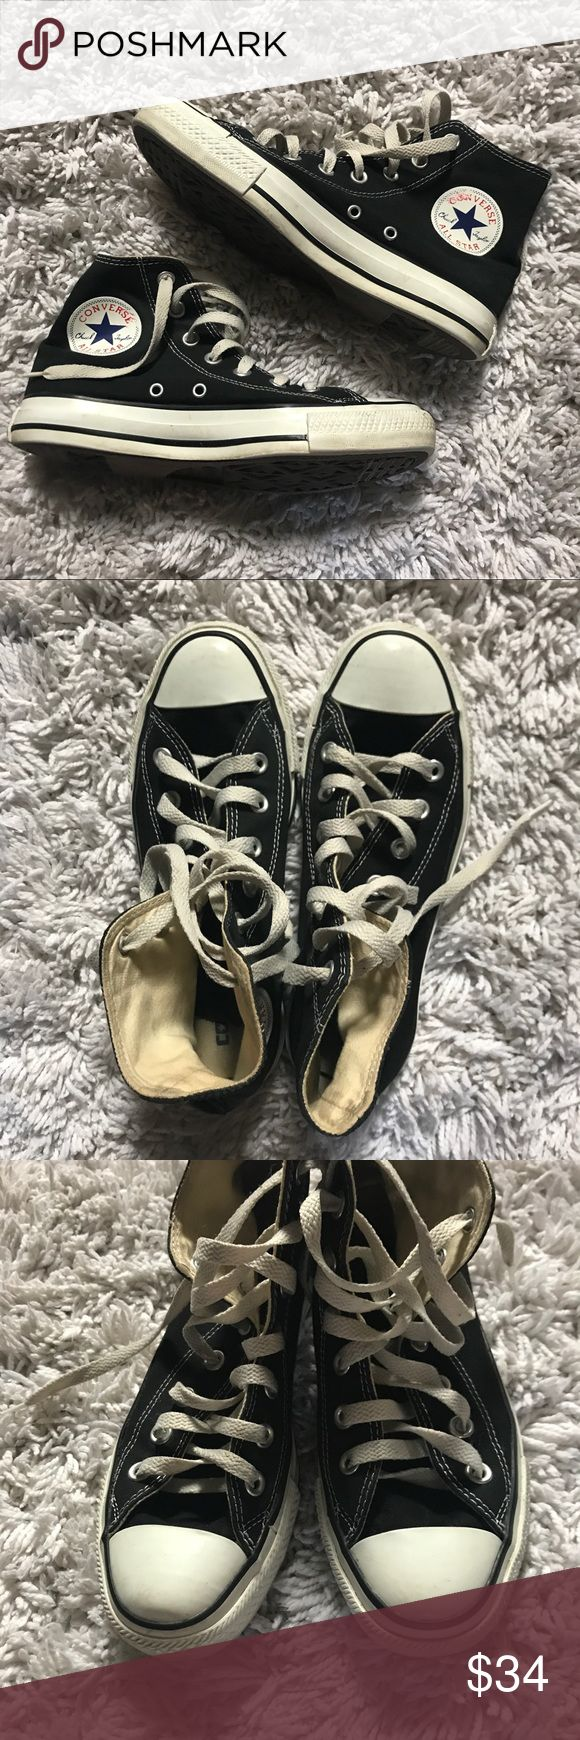 Black High Top Converse Good Condition! Has some wear Converse Shoes